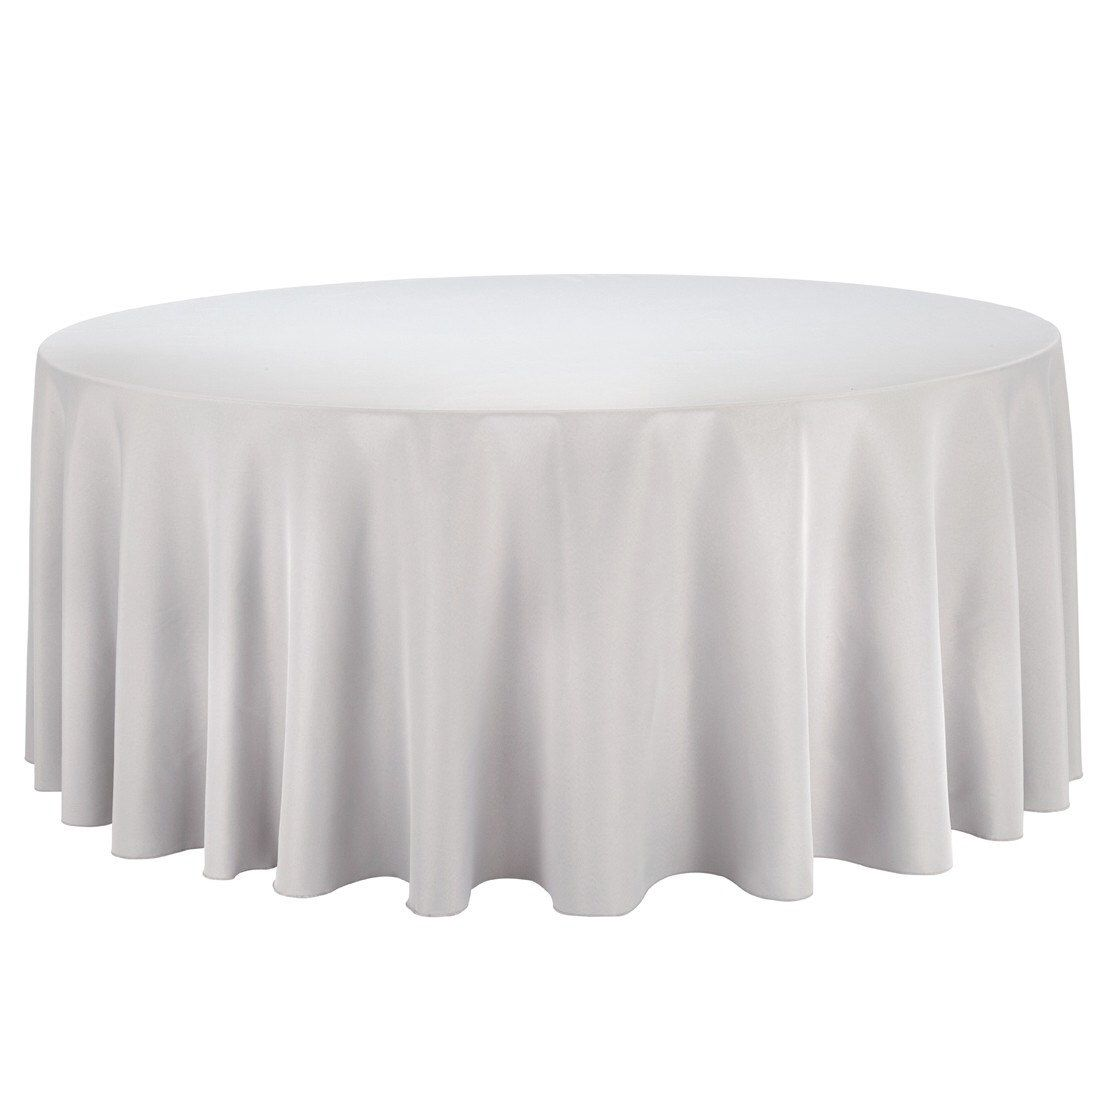 132 Inch Round Silver Tablecloth Polyester Wedding Tablecloth